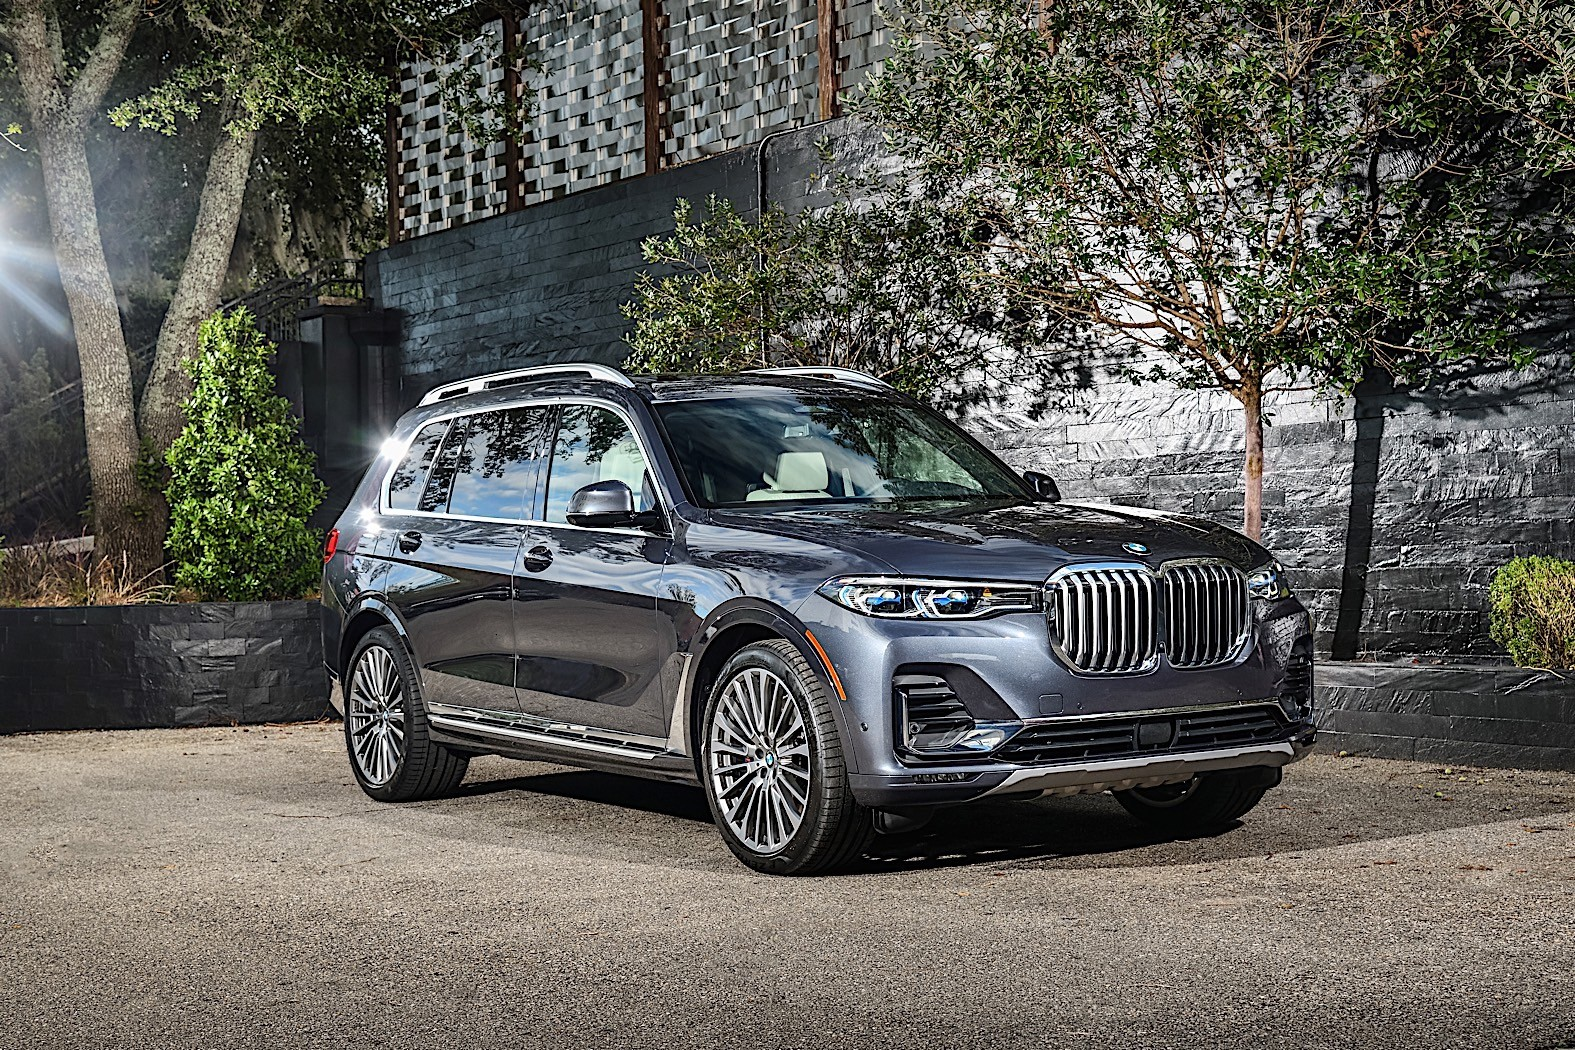 2020 bmw x7 shows up on the road photographers shoot like